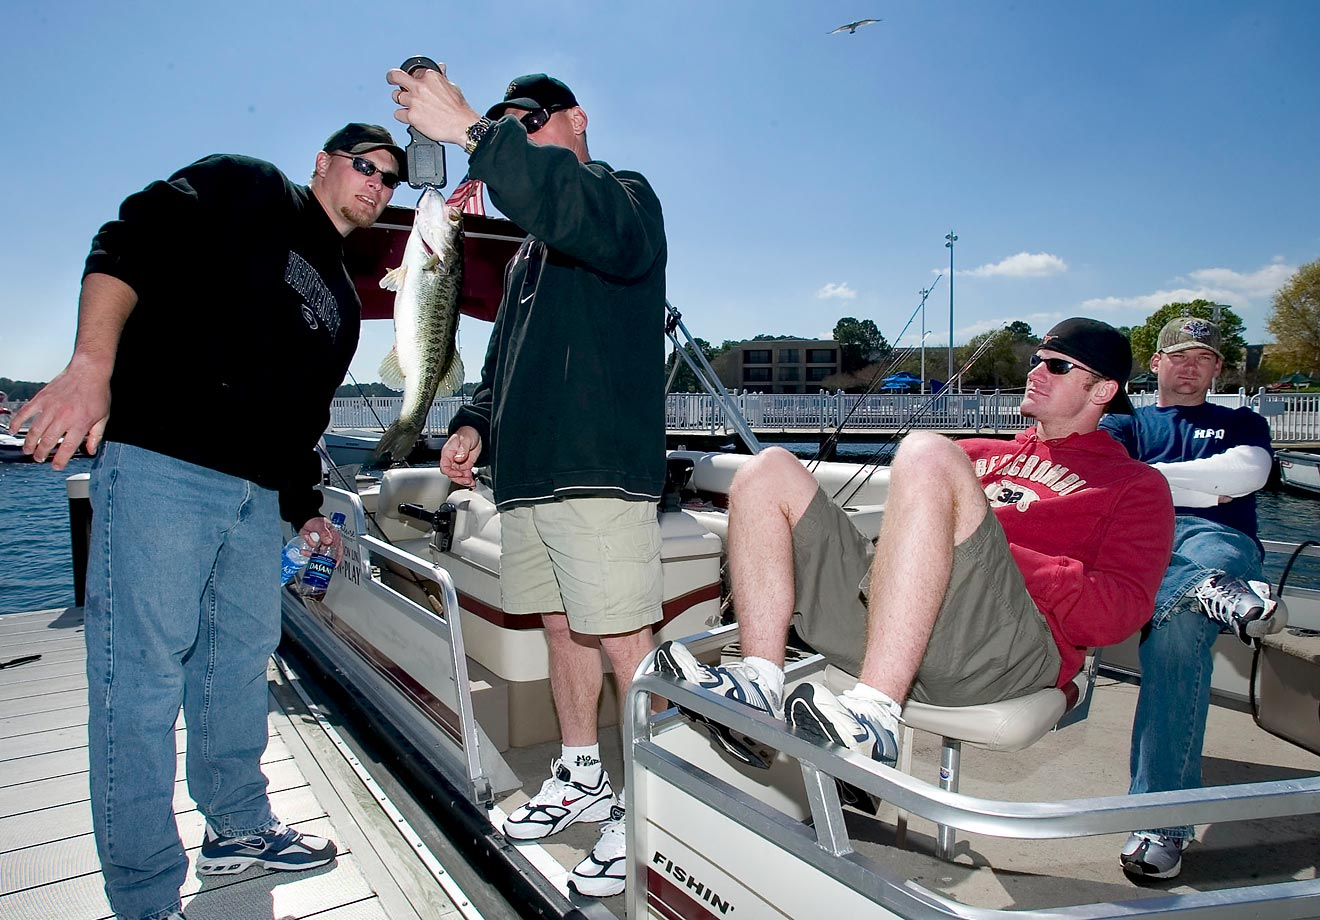 Houston Astros' Craig Biggio, center, Wade Miller, Brad Ausmus and Ricky Stone during the 1st Annual Walt Disney World Recreation Spring Training Bass Classic.